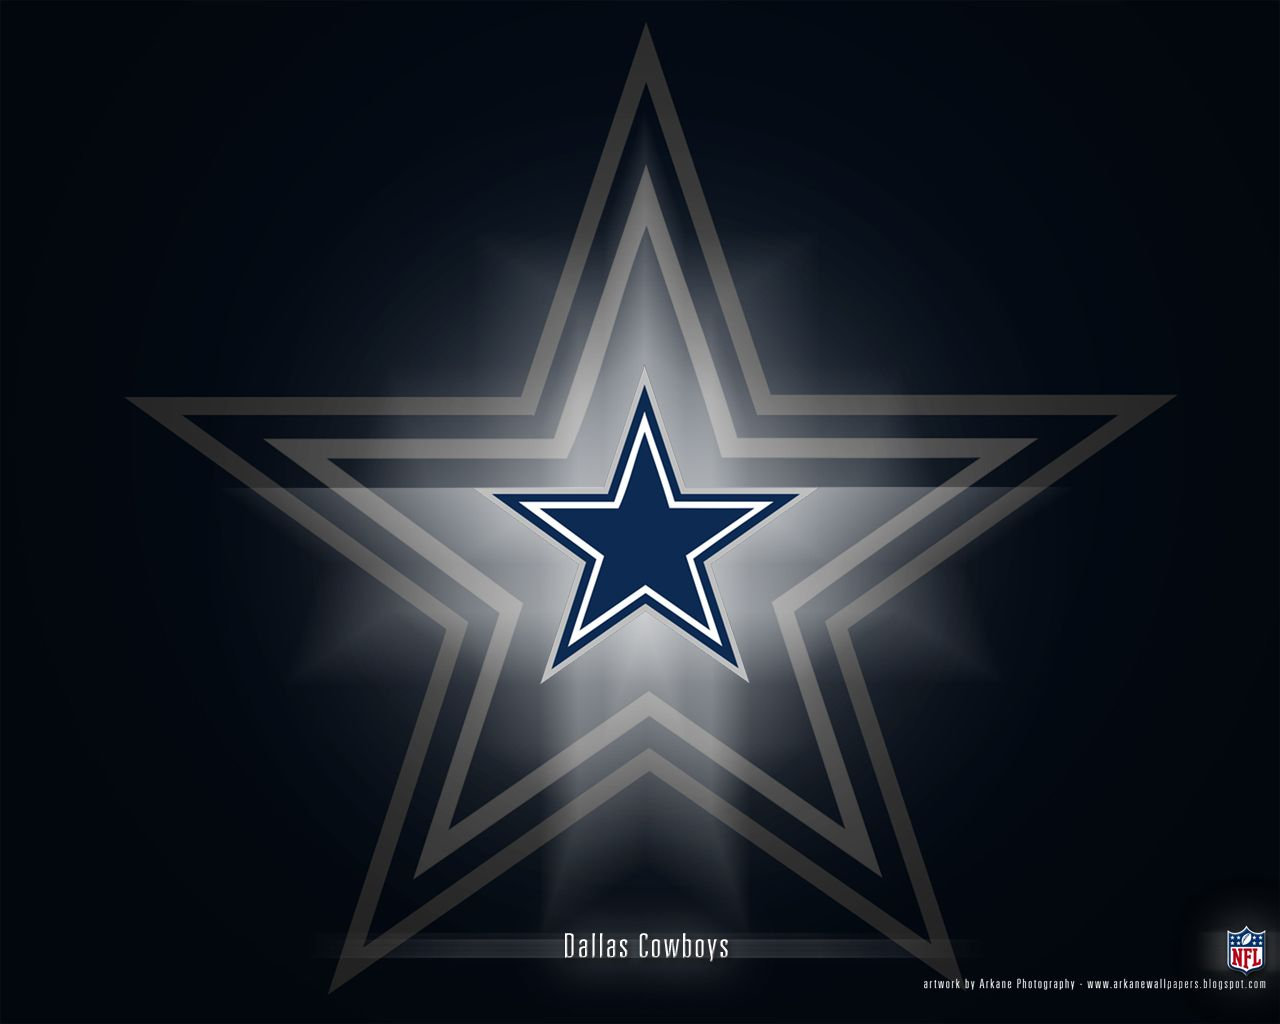 63 best dallas cowboys wallpaper images on pinterest | dallas